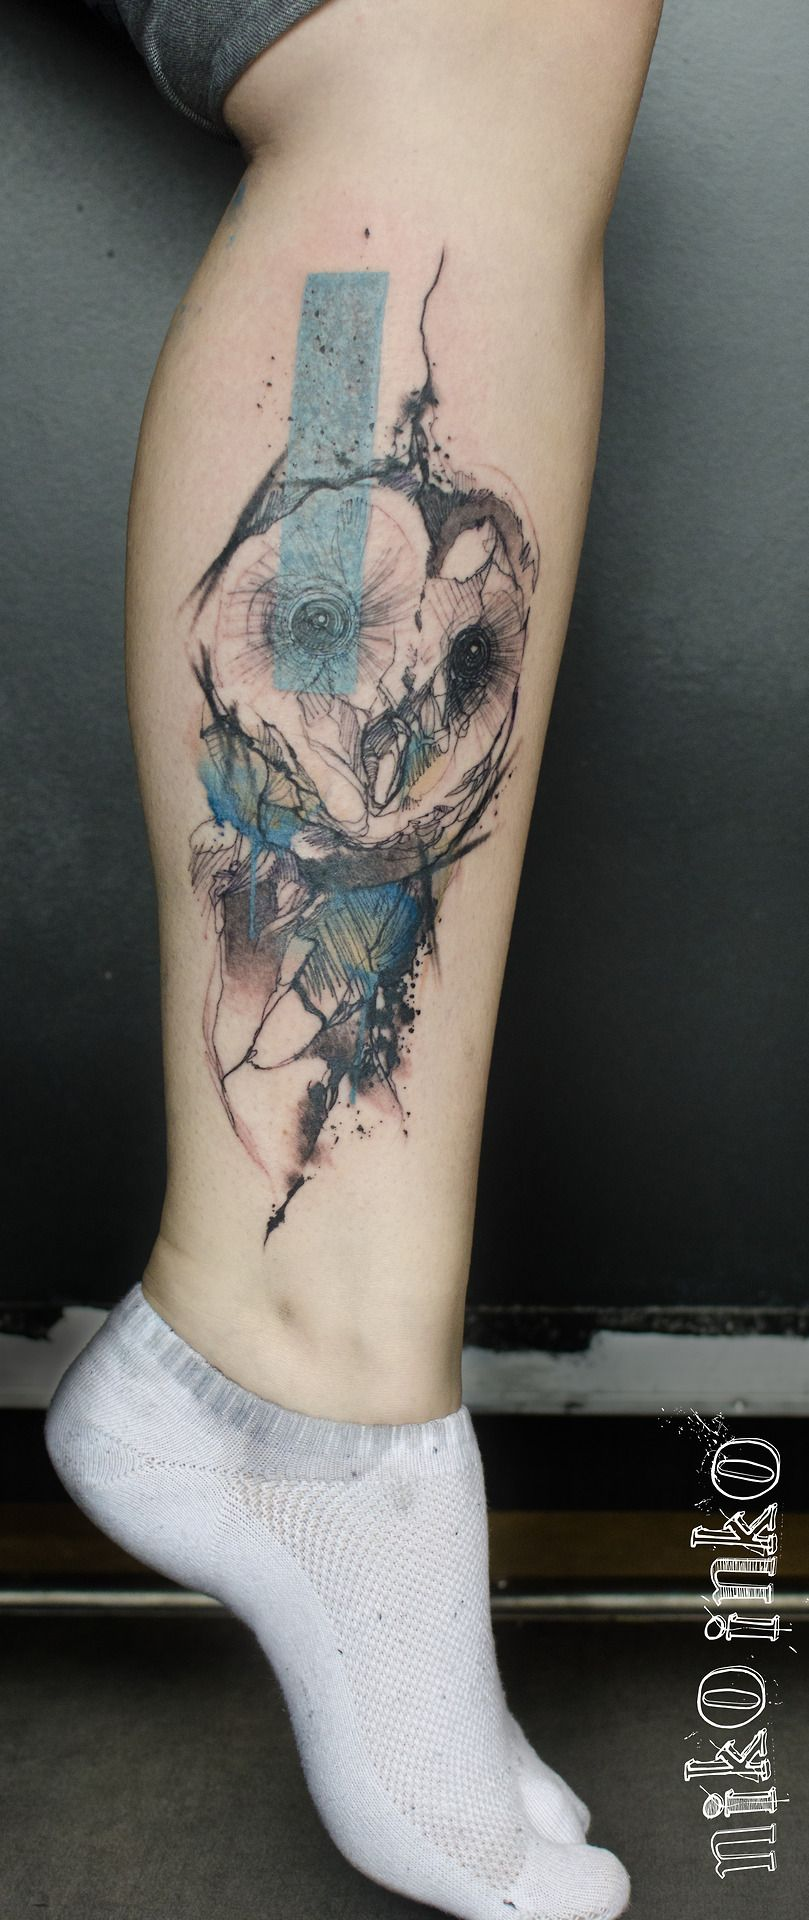 Niko inko dövme pinterest badass tattoo and owl